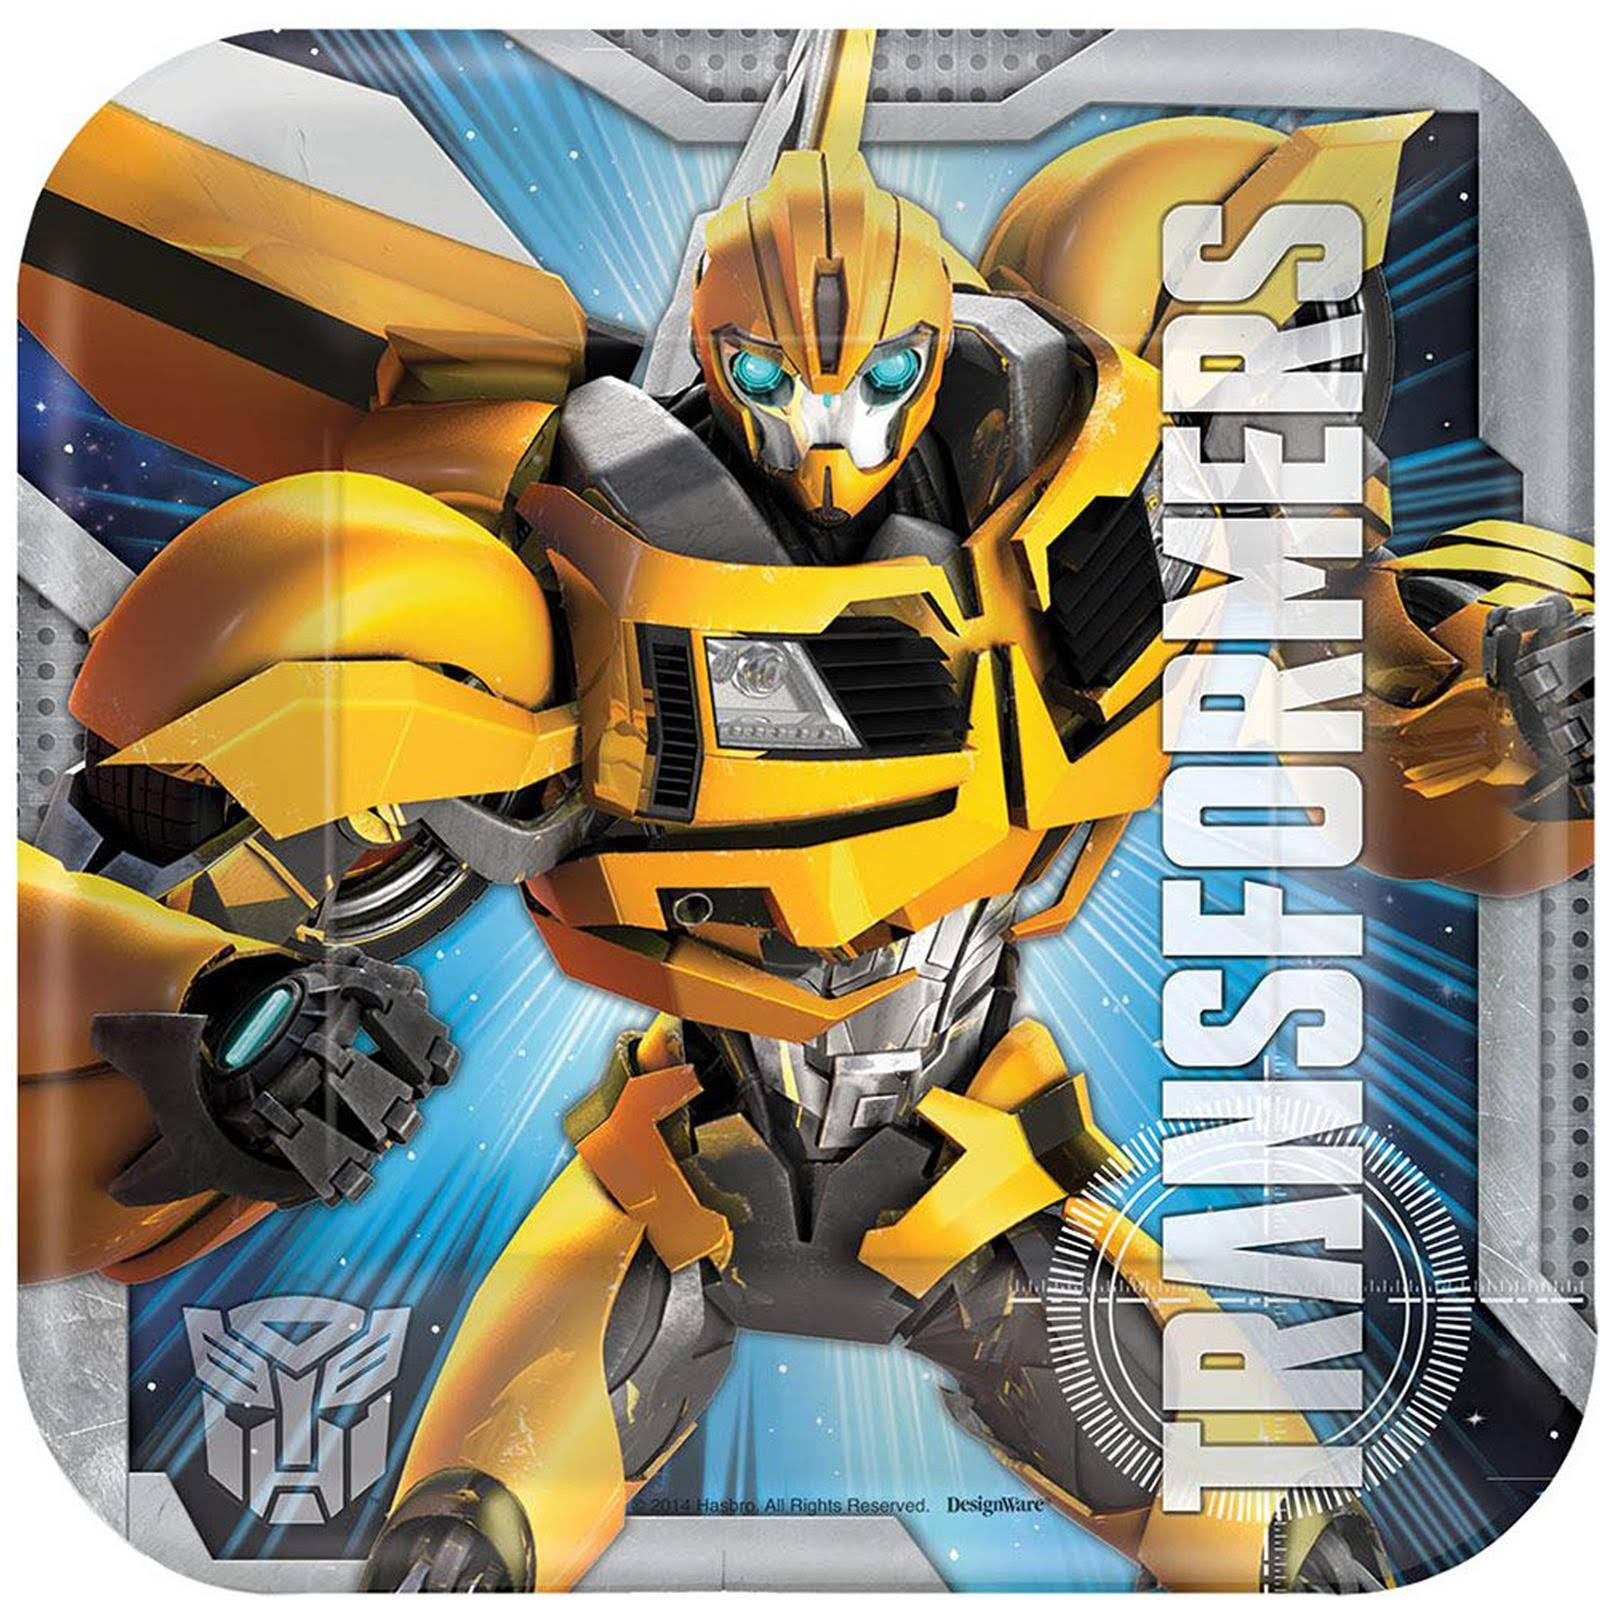 "Amscan Dessert Square Plates - Transformers, 7"", Pack of 48"